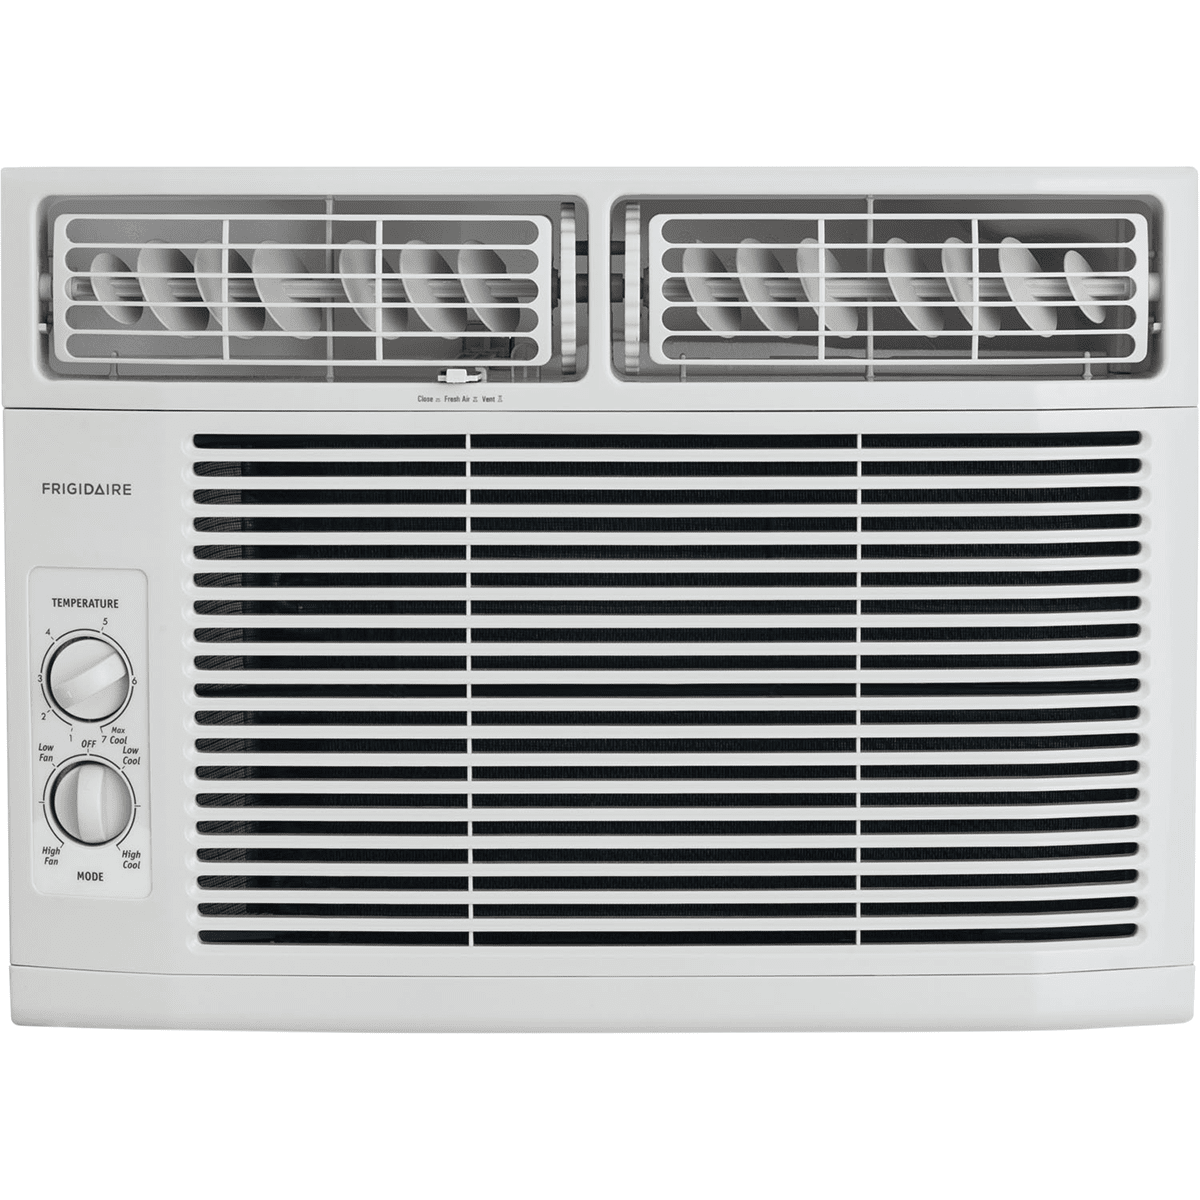 Frigidaire FFRA1011R1 115 V 10,000 BTU Window Air Conditioner